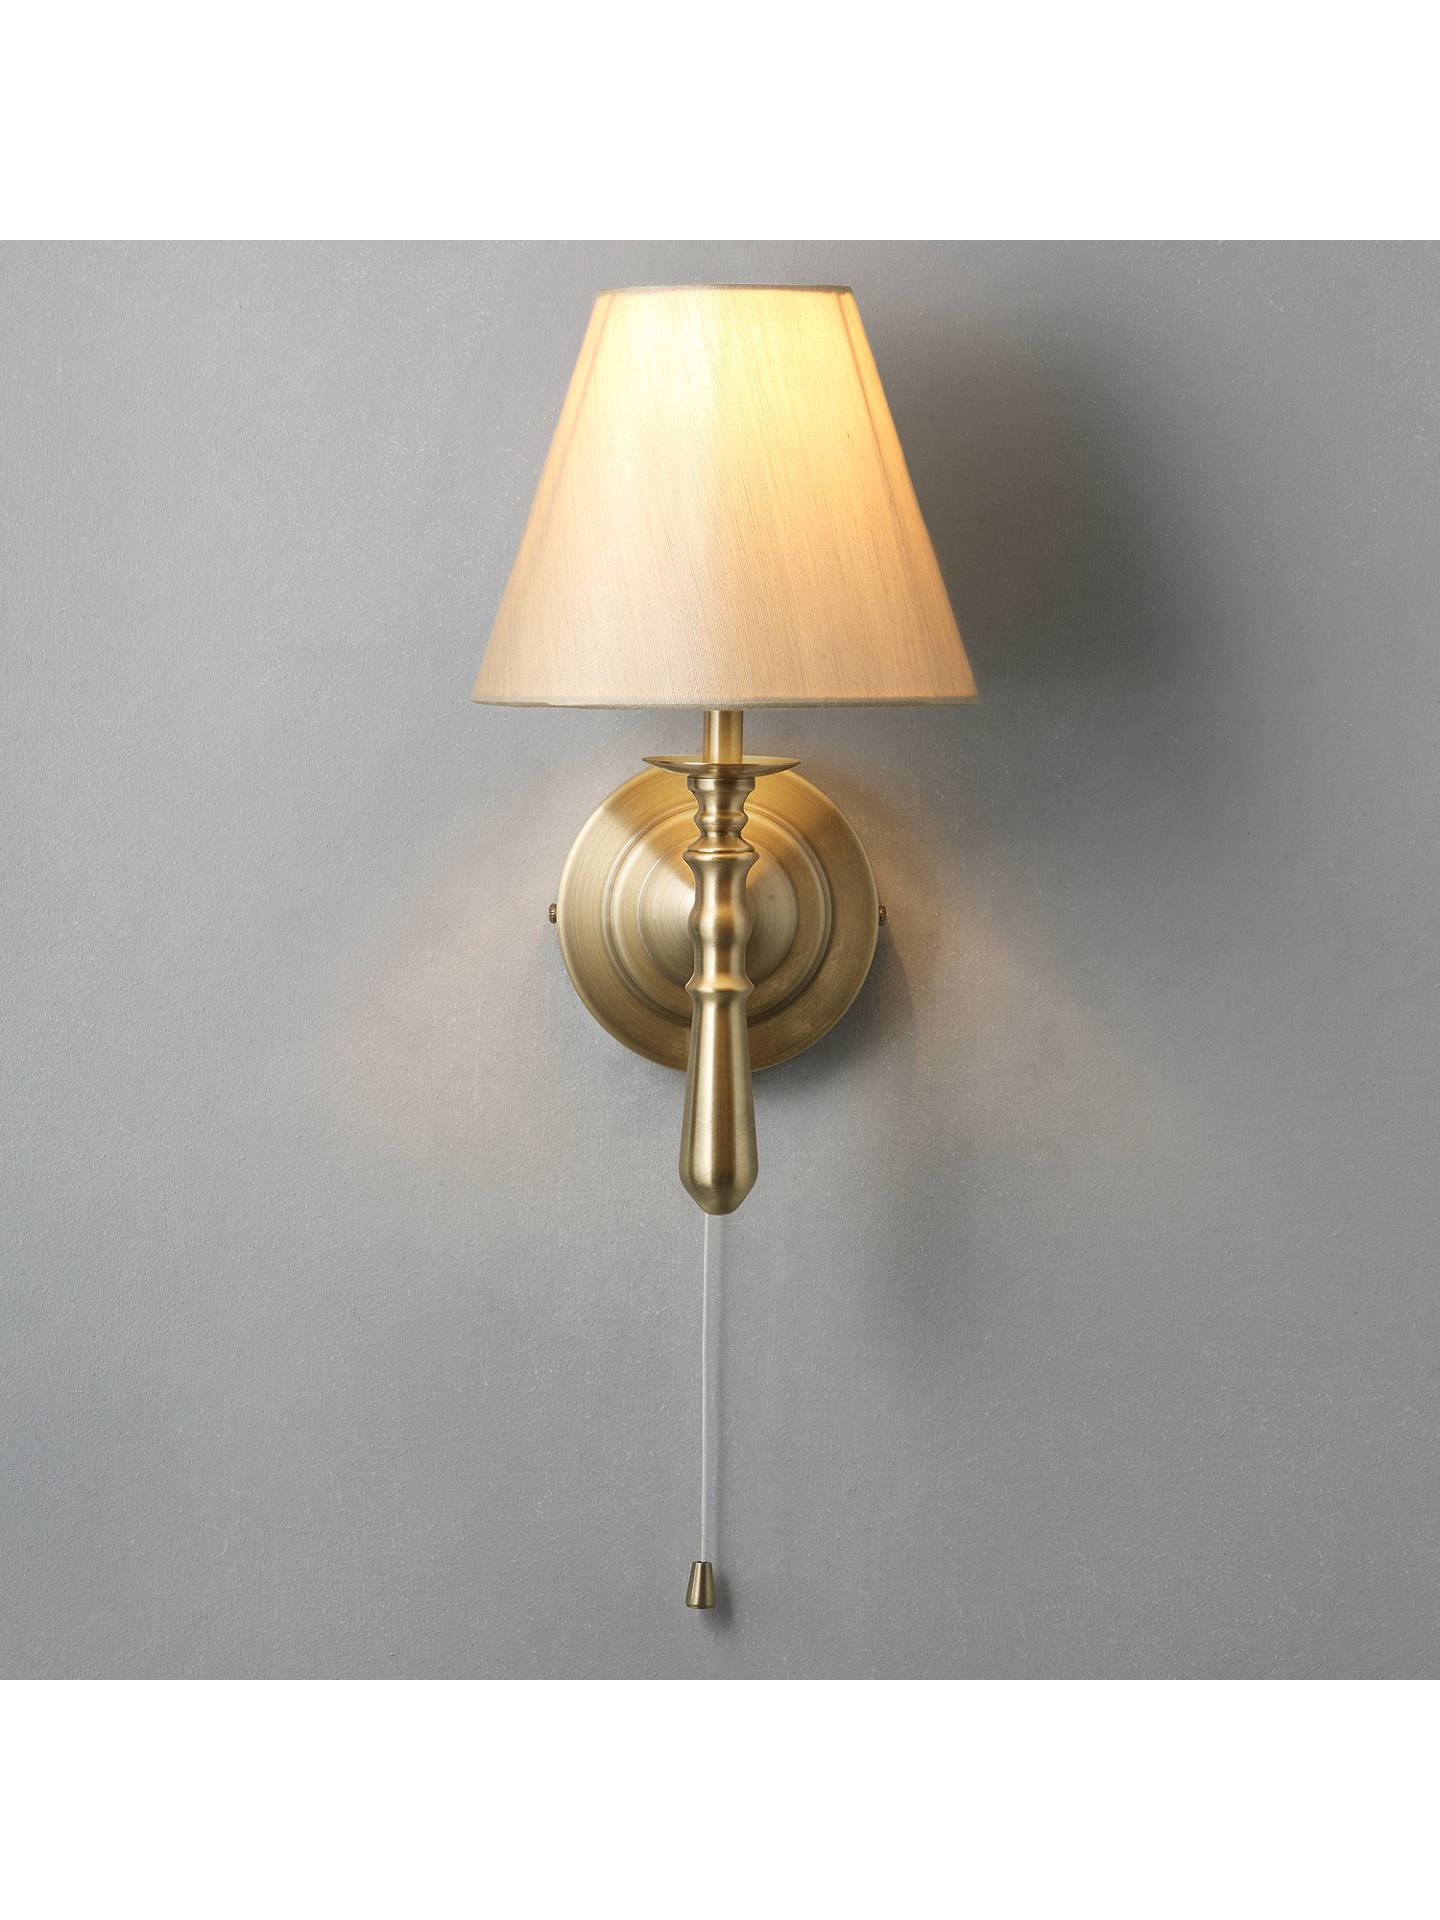 BuyJohn Lewis & Partners Sloane Wall Light, Antique Brass Online at johnlewis.com